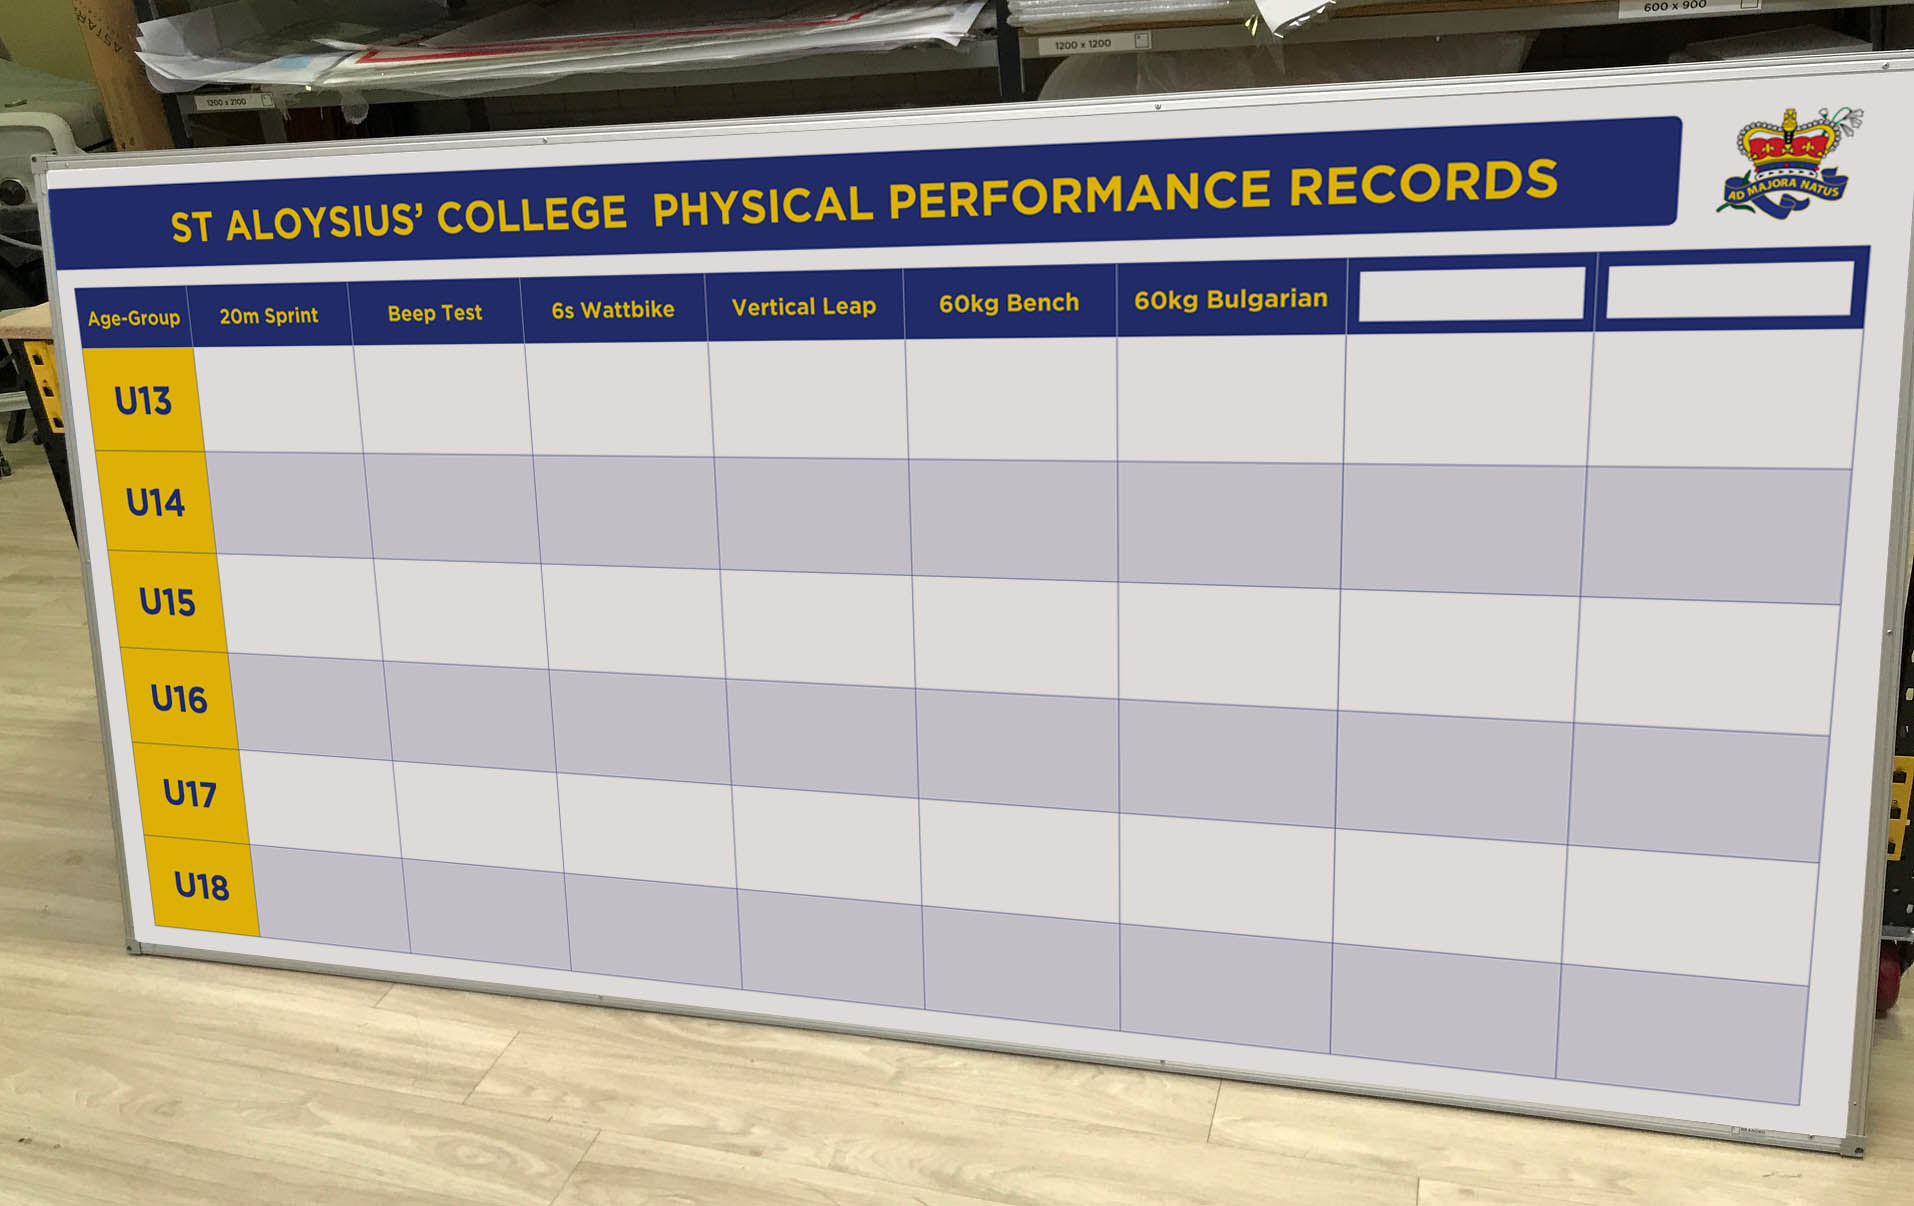 St Alloysius Sports Record board